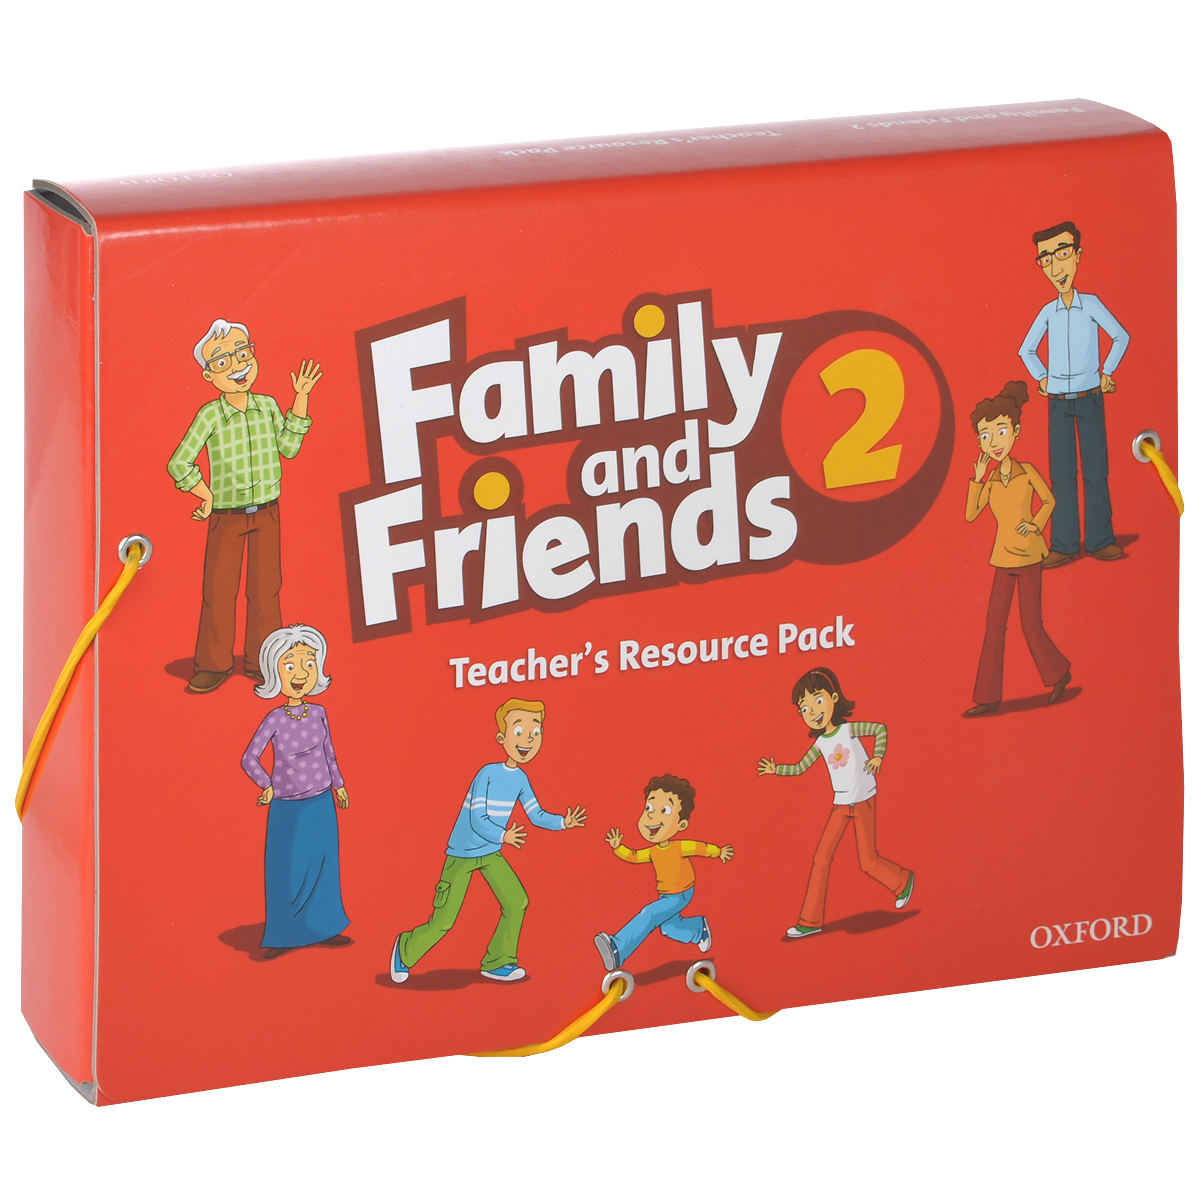 Family and Friends 2: Teacher's Resource Pack little friends flashcards набор из 21 карточки